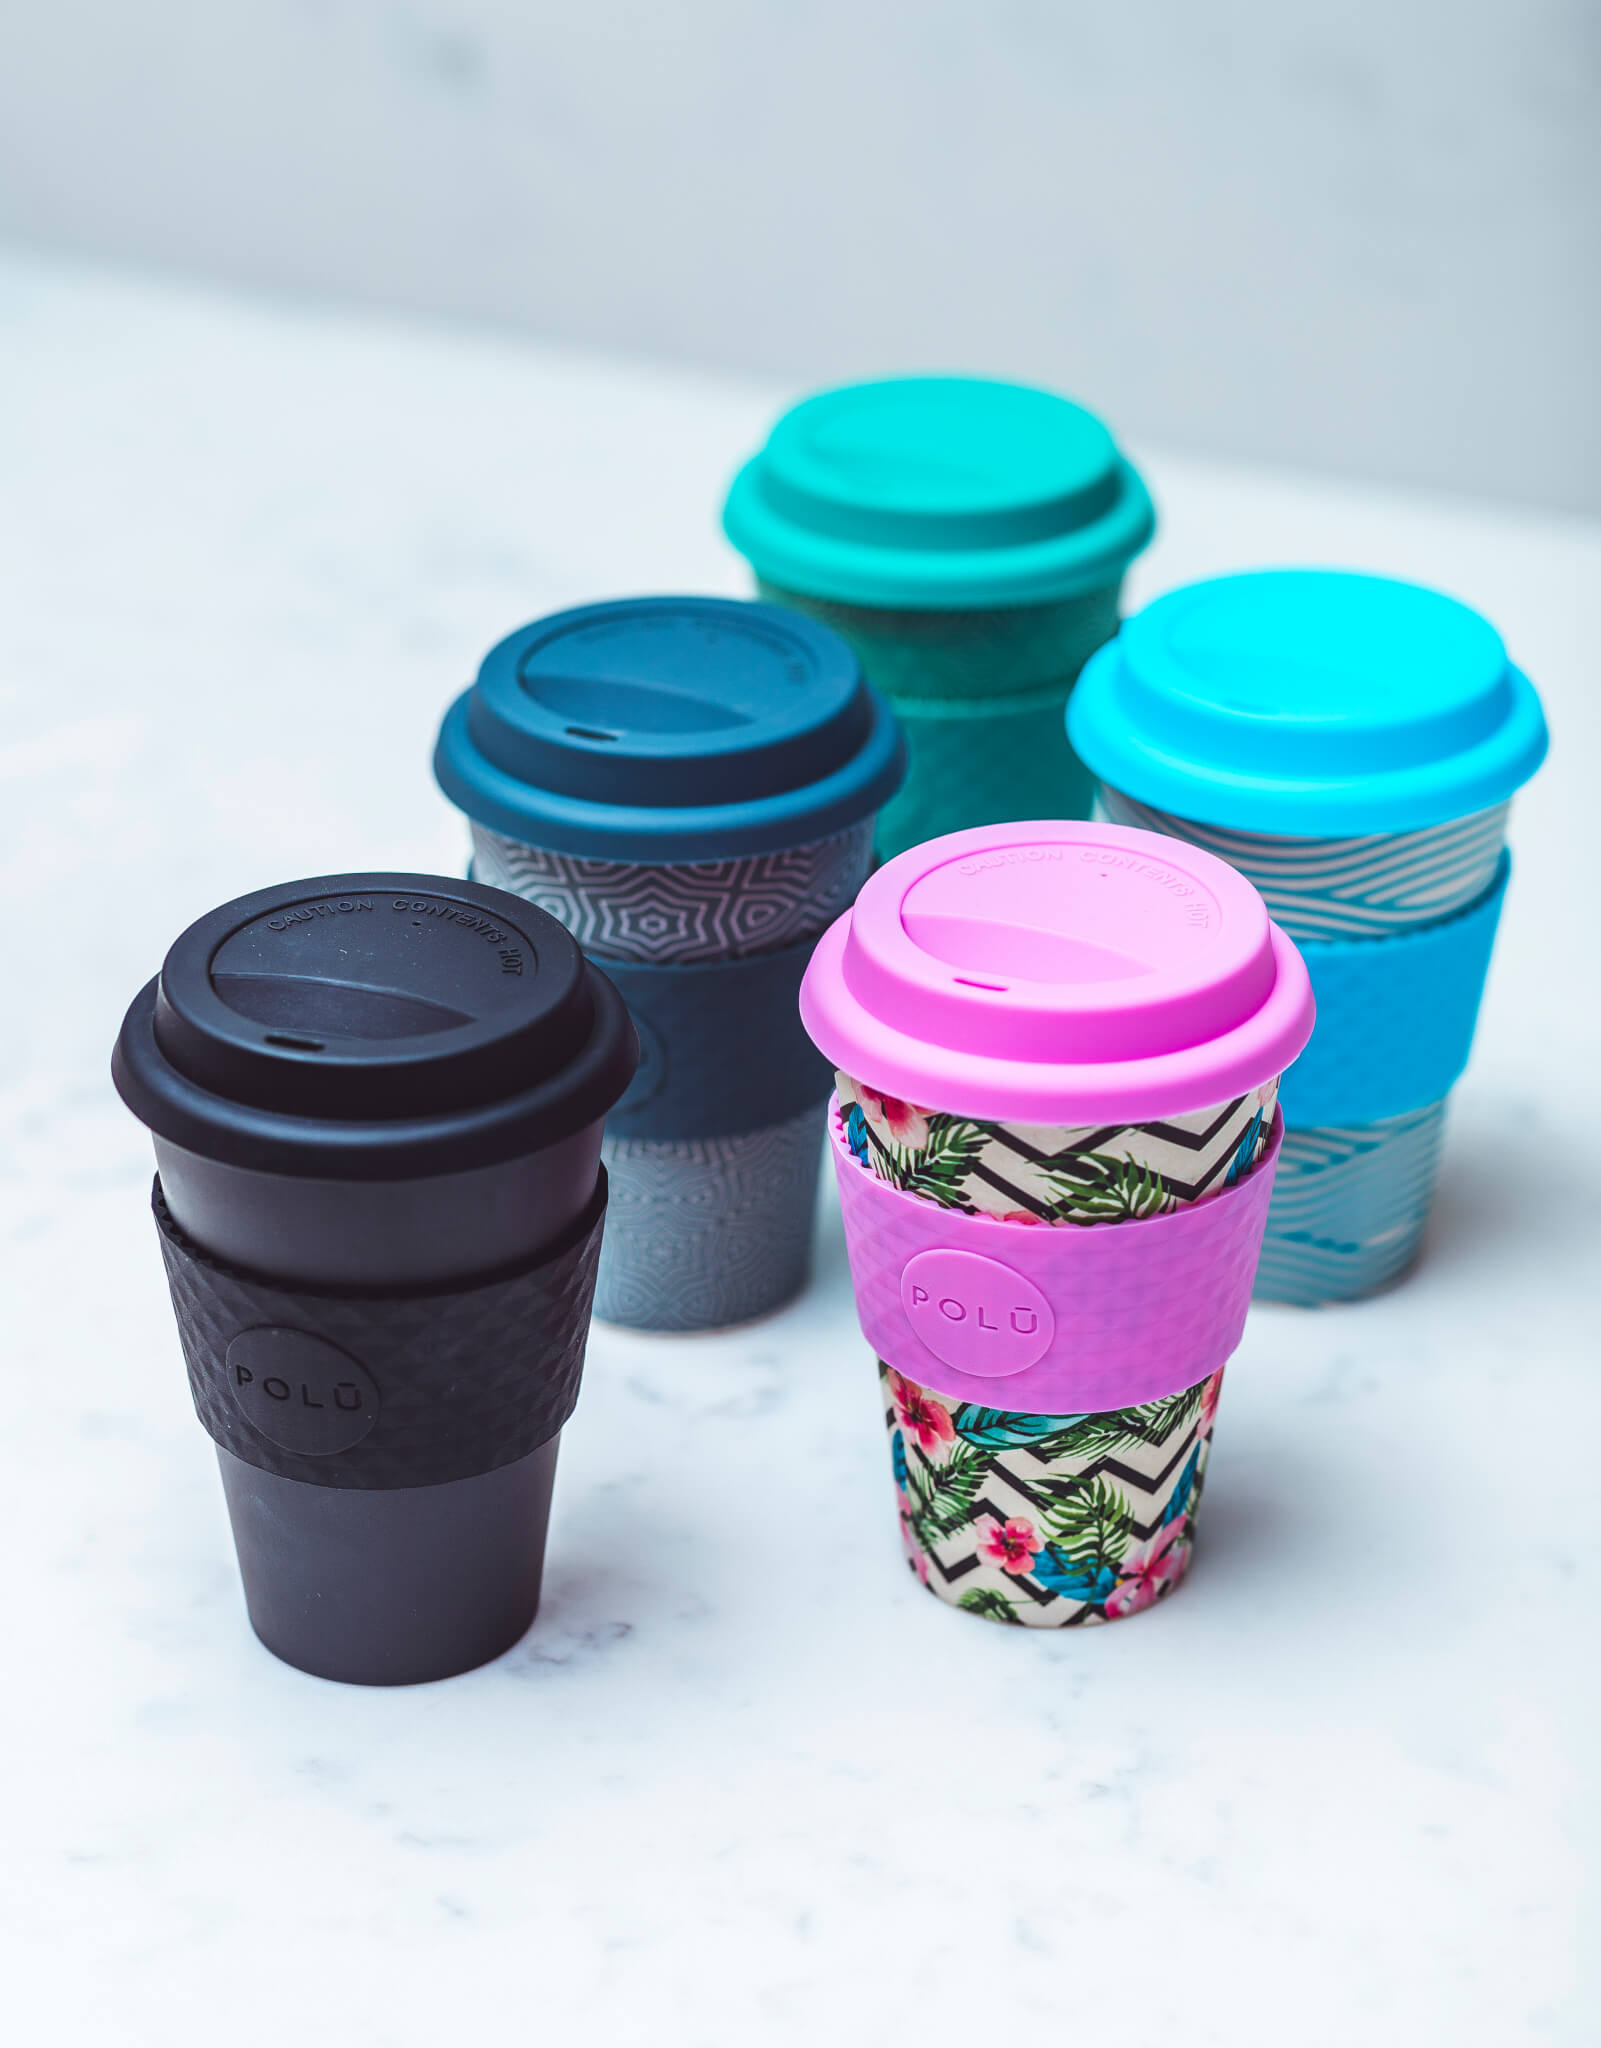 packaging by polu - reusable bamboo cups